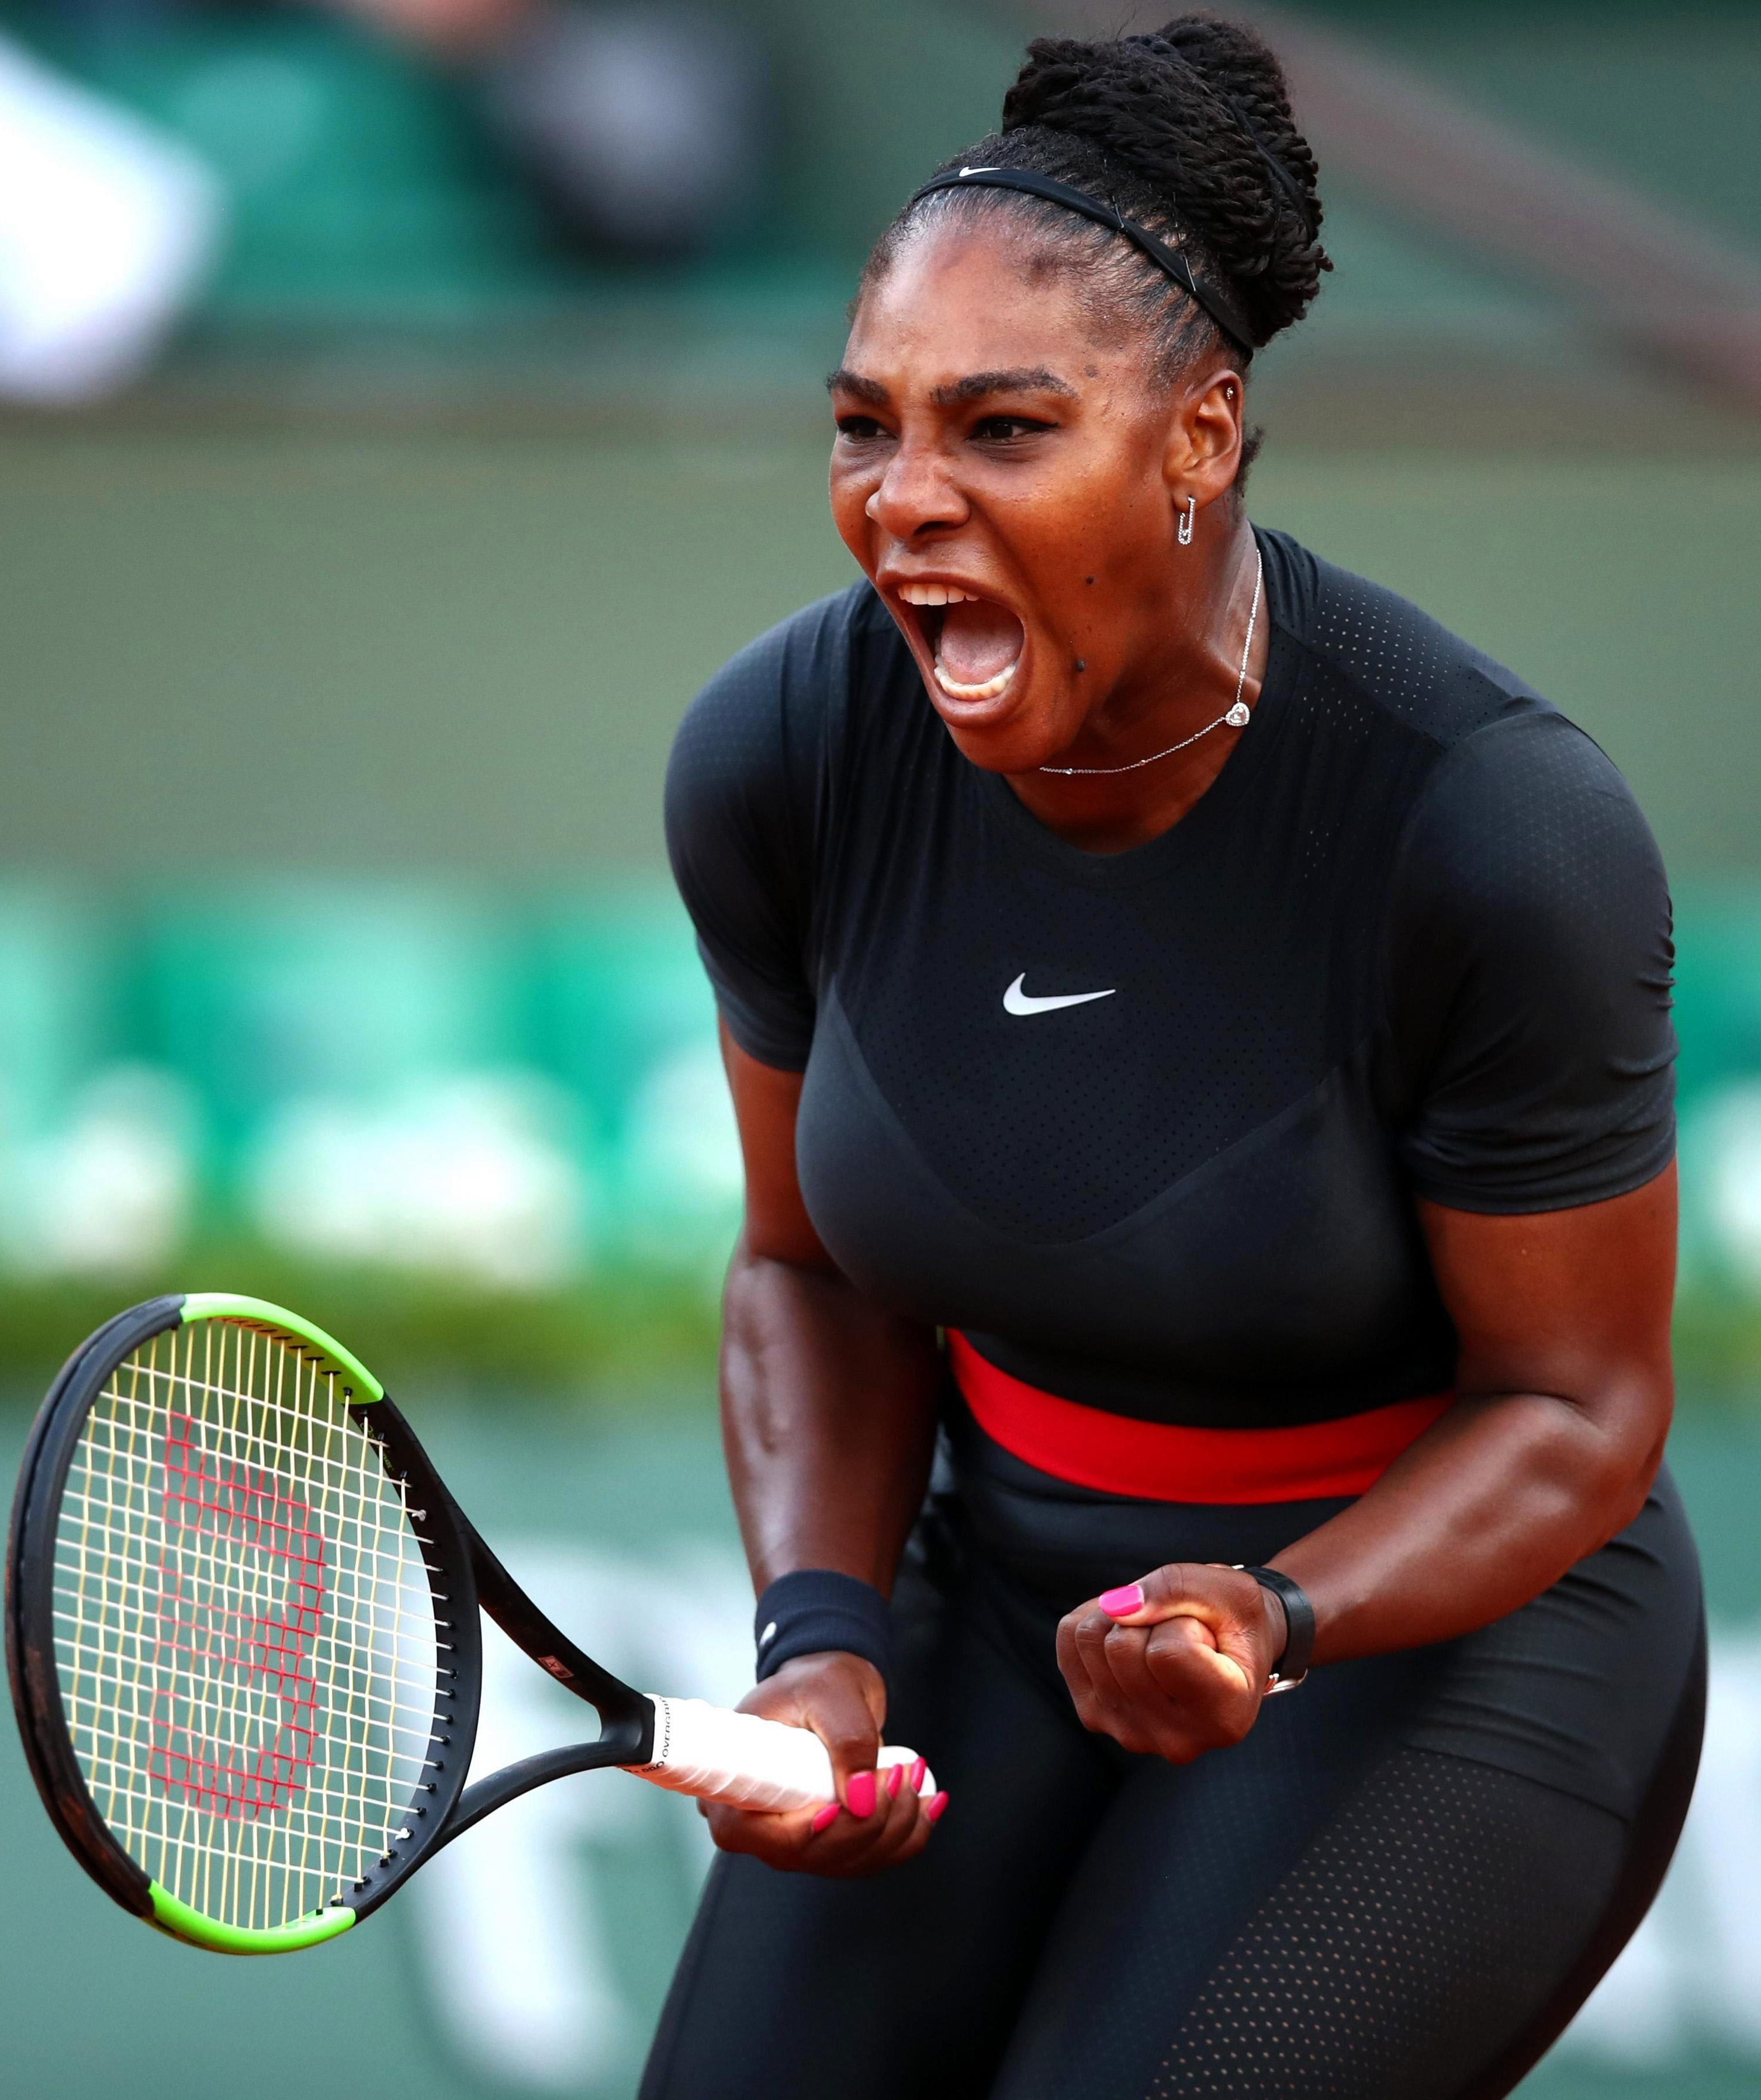 Serena Williams has been ranked World No 1 by the WTA on eight occasions